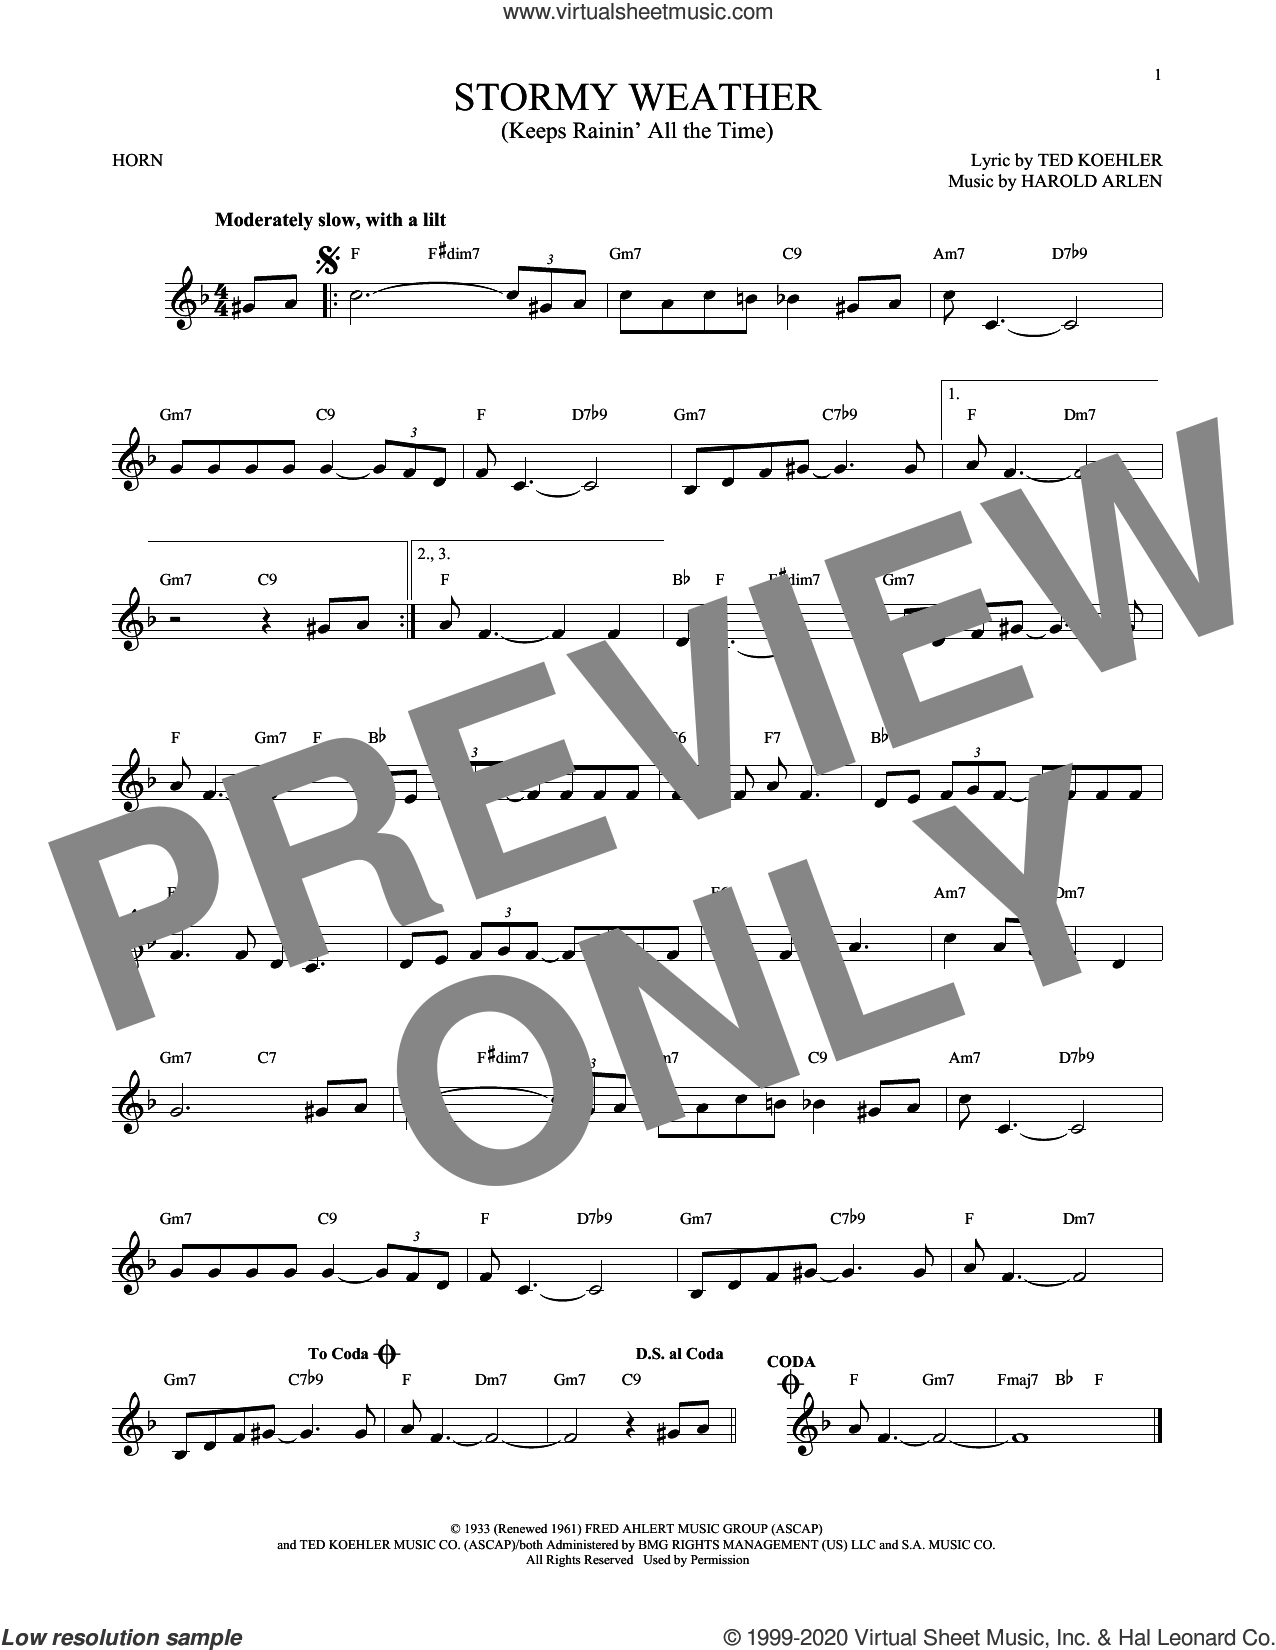 Stormy Weather (Keeps Rainin' All The Time) sheet music for horn solo by Harold Arlen and Ted Koehler, intermediate skill level